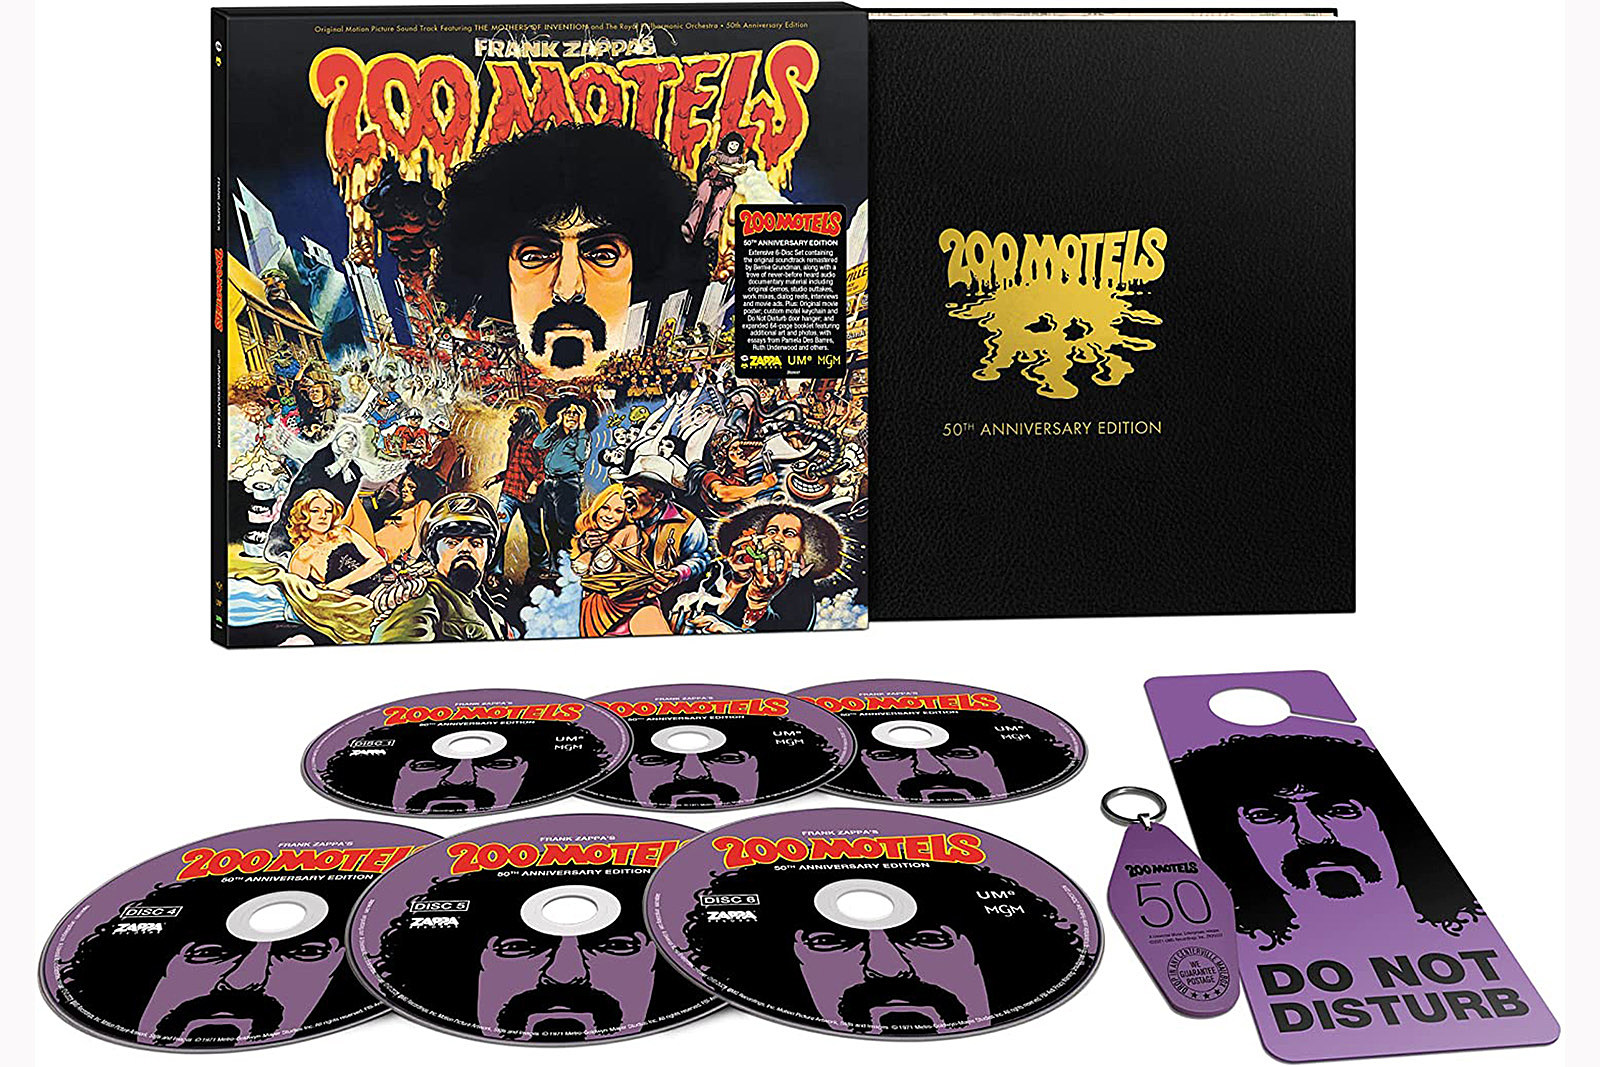 Frank Zappa's '200 Motels' Extended for 50th Anniversary